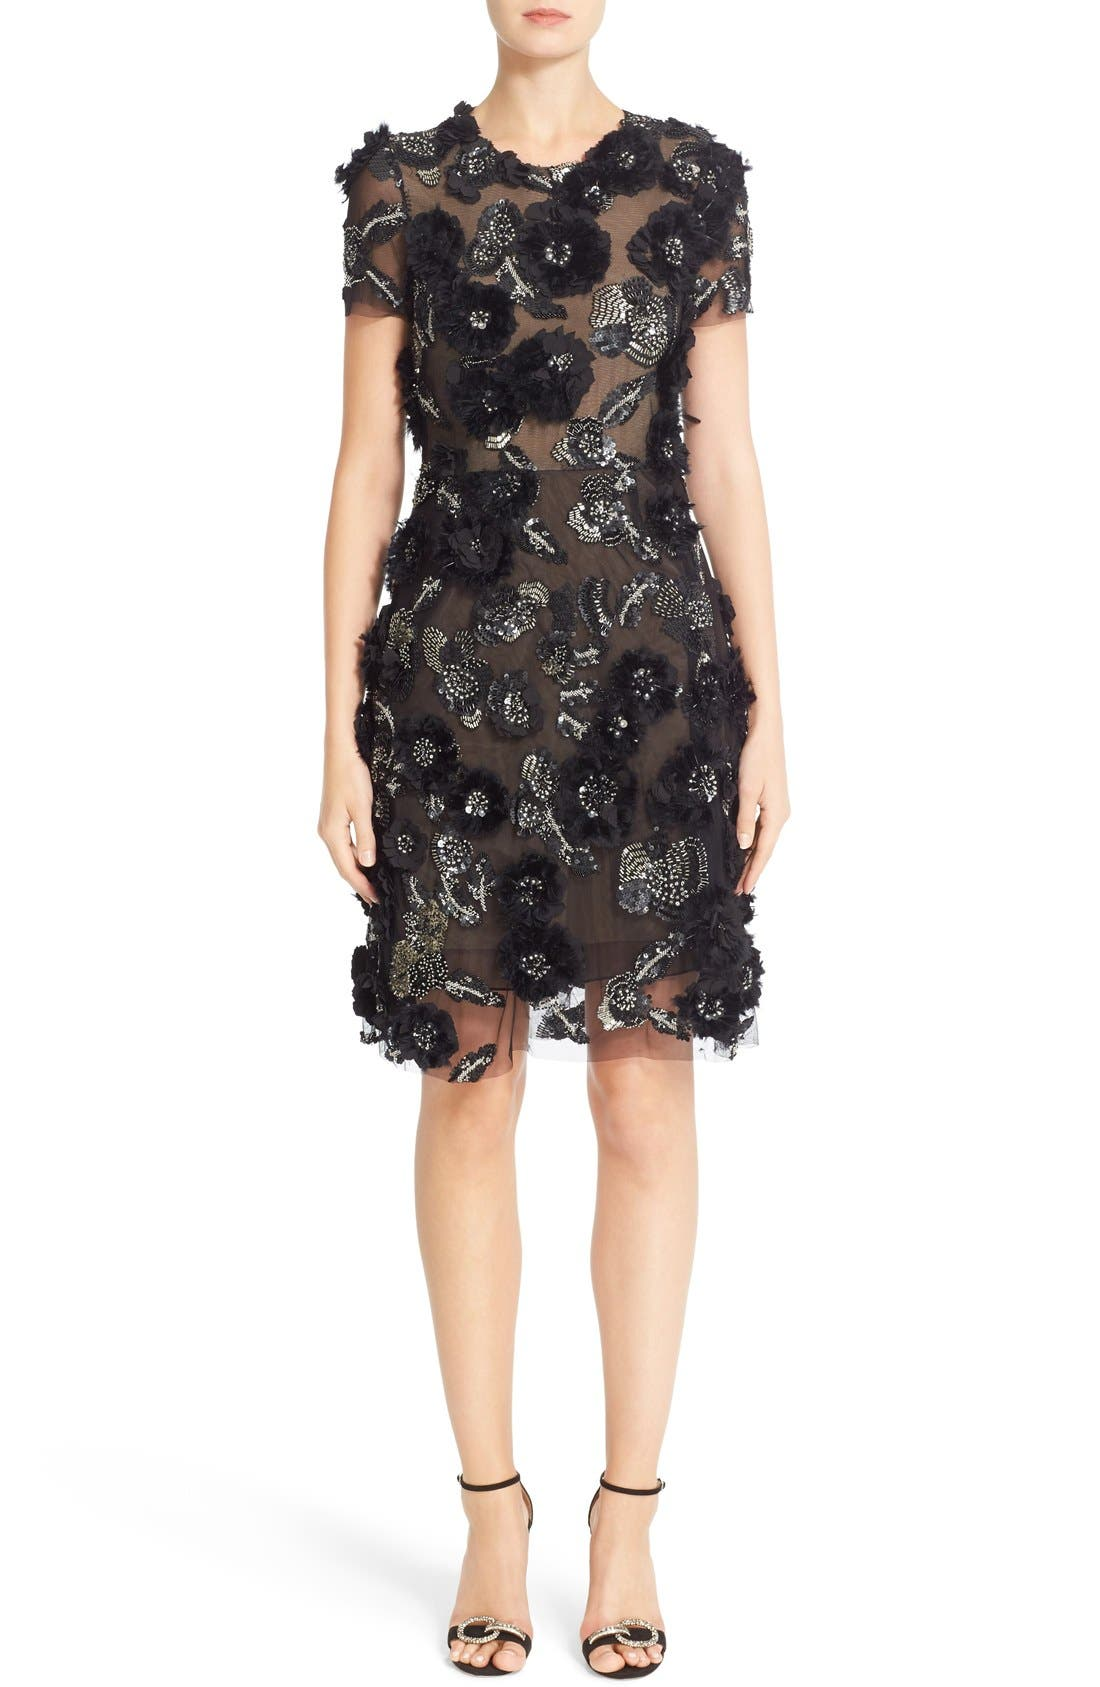 Alternate Image 1 Selected - Marchesa Cap Sleeve Tulle Dress with 3D Floral Embellishments